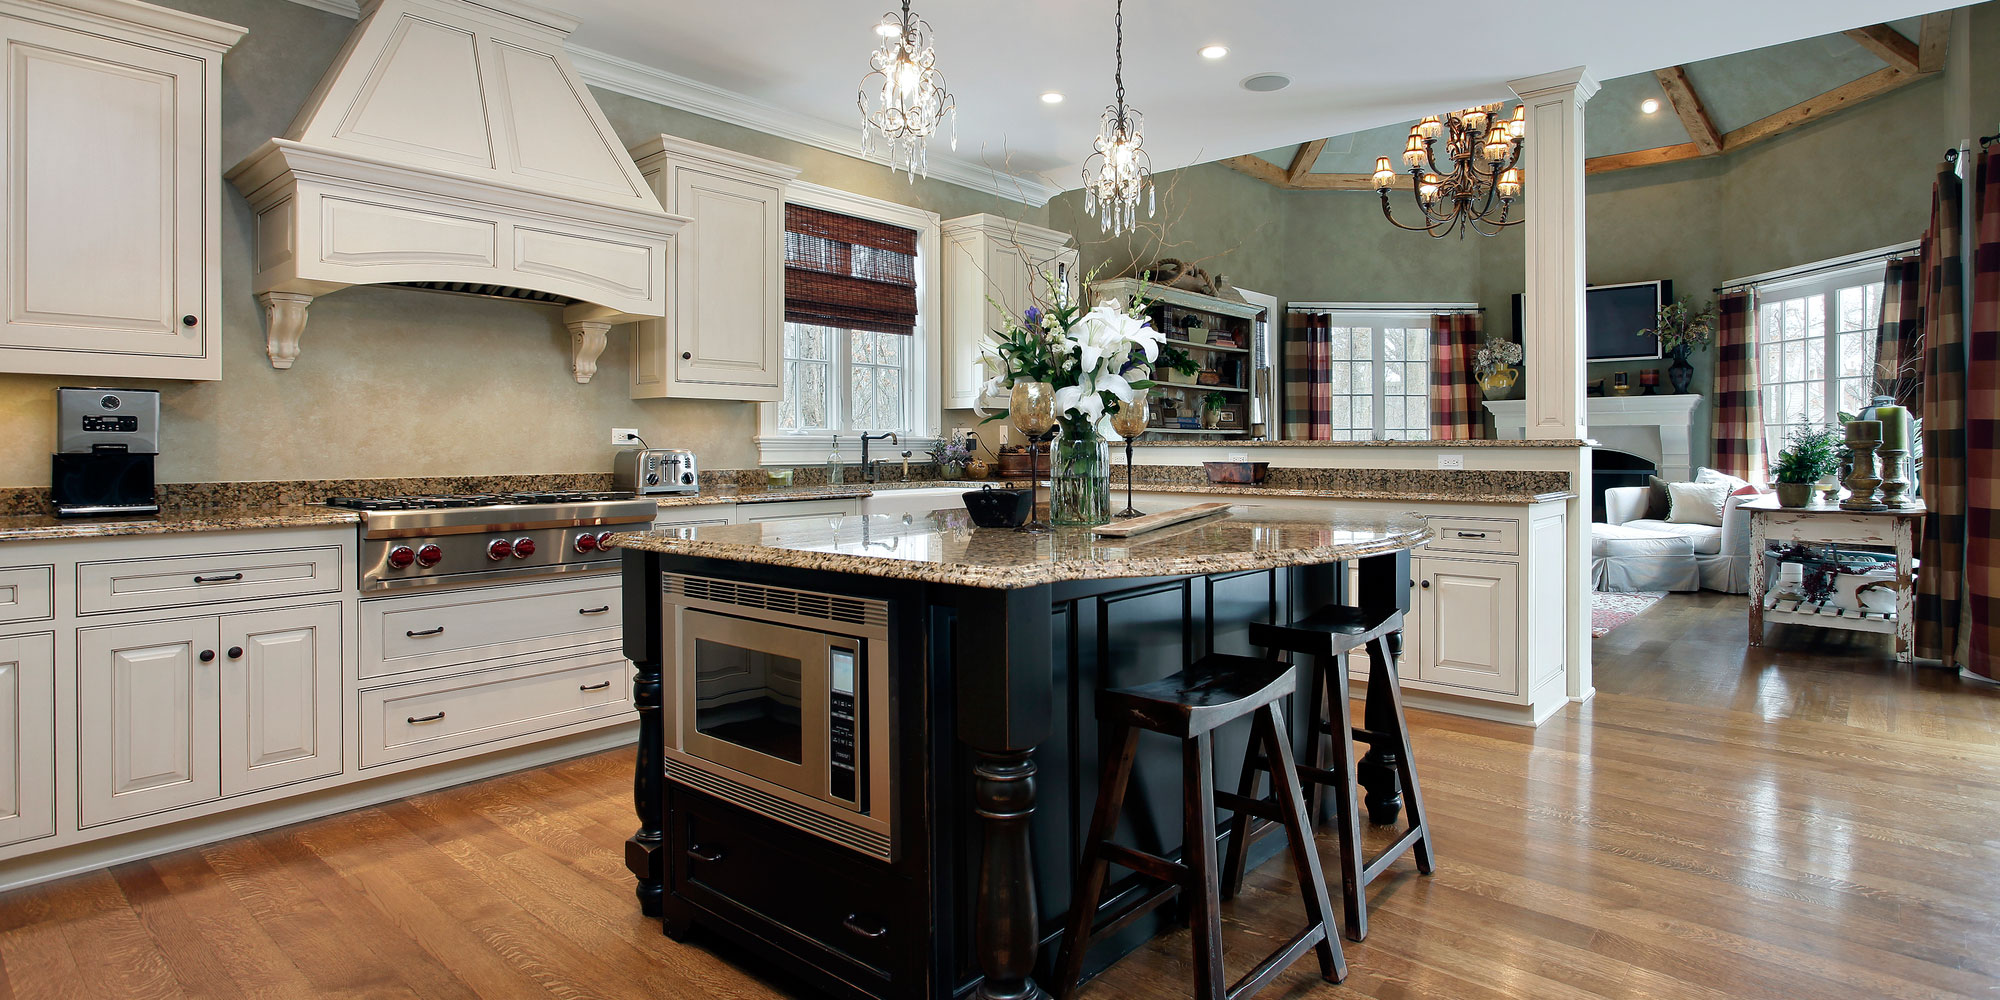 Kitchen Cabinets Denver Entrancing Hti Granite & Cabinetry  Kitchen Cabinets Denver  Granite . Design Ideas